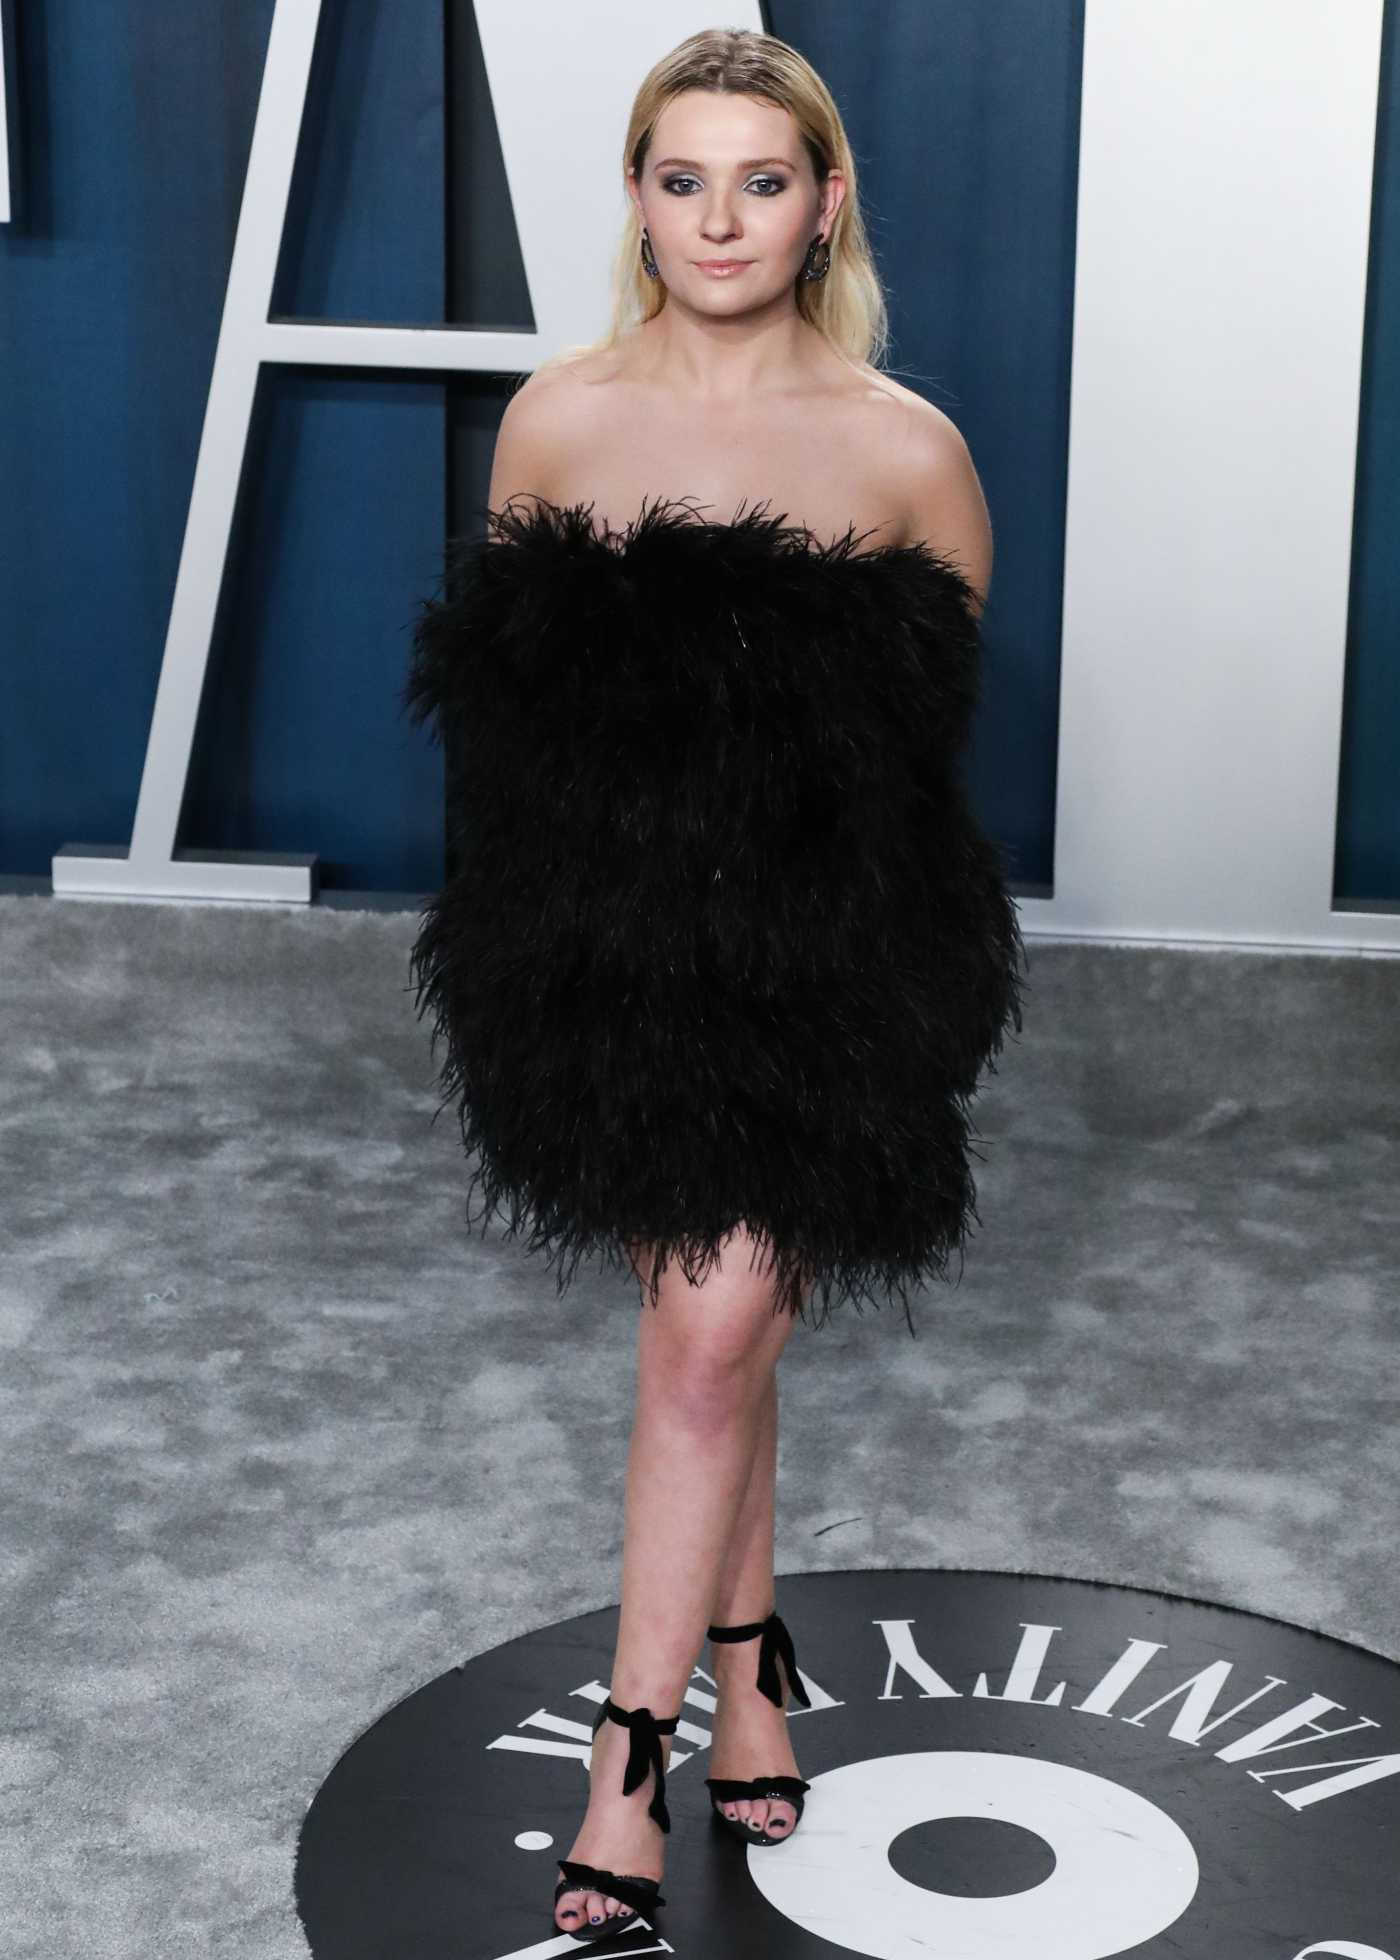 Abigail Breslin Attends the 92nd Academy Awards Vanity Fair Oscar Party in Beverly Hills 02/09/2020